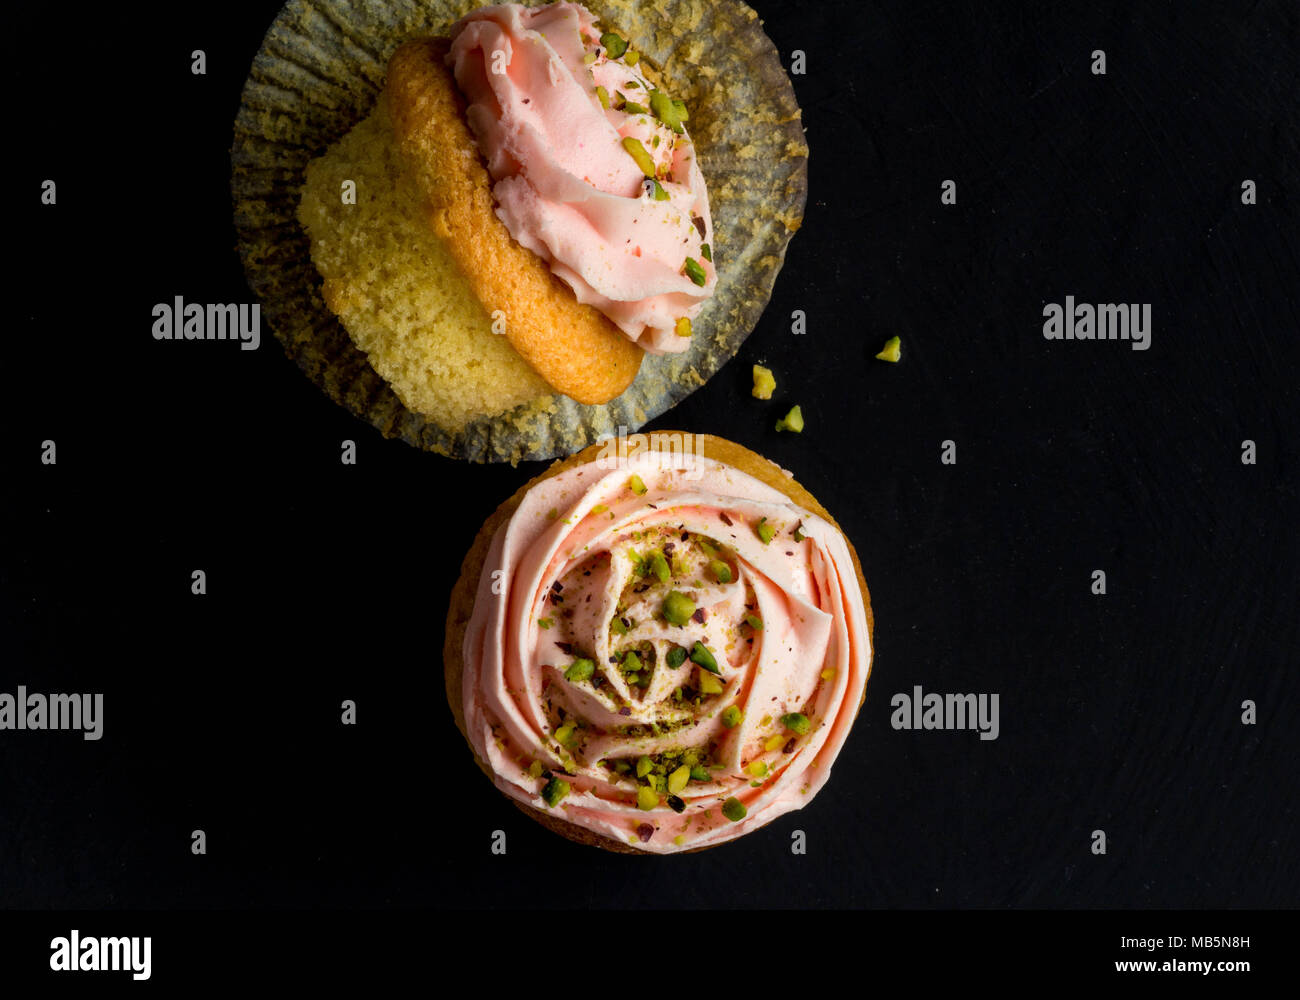 Two pink cup cakes with pistachio nut sprinkles on black background, top view photograph - Stock Image